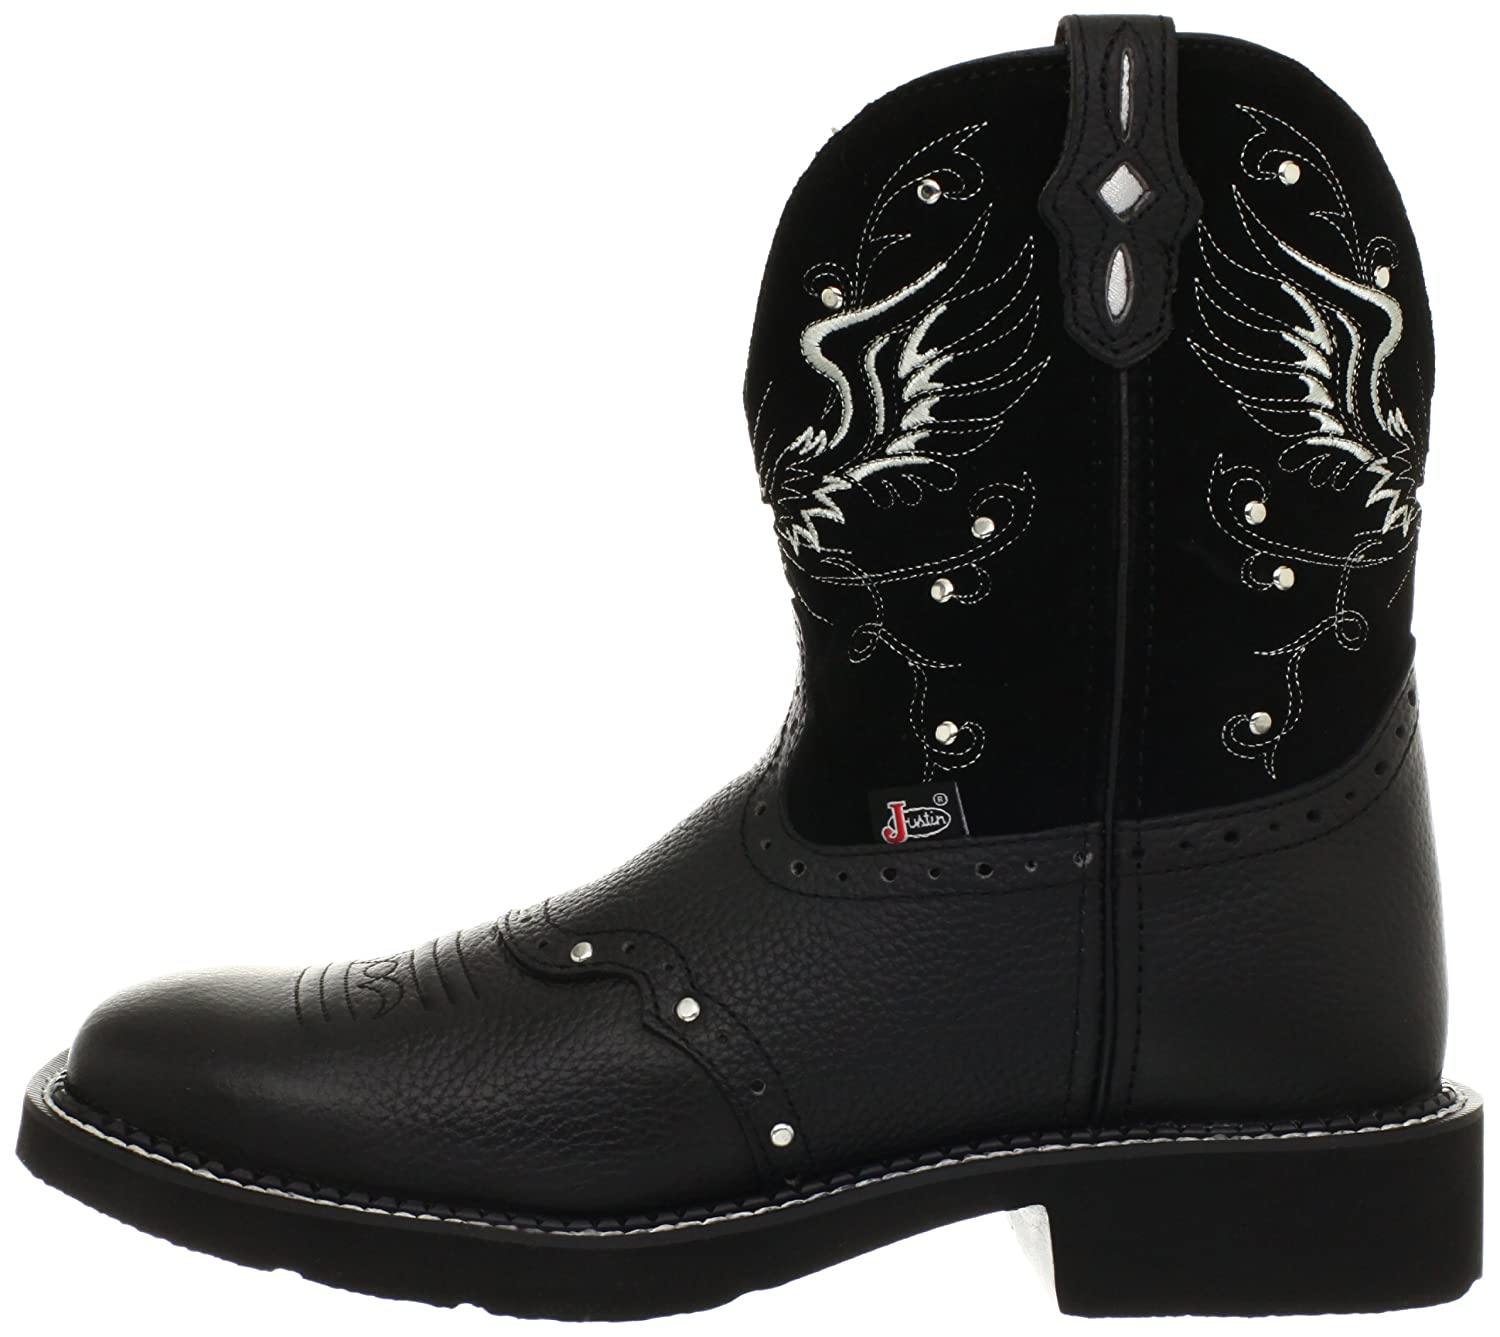 Justin Boots Women's Gypsy Collection Western Boot B005ADAPCU 8.5 B(M) US|Black Deercow/Black Suede